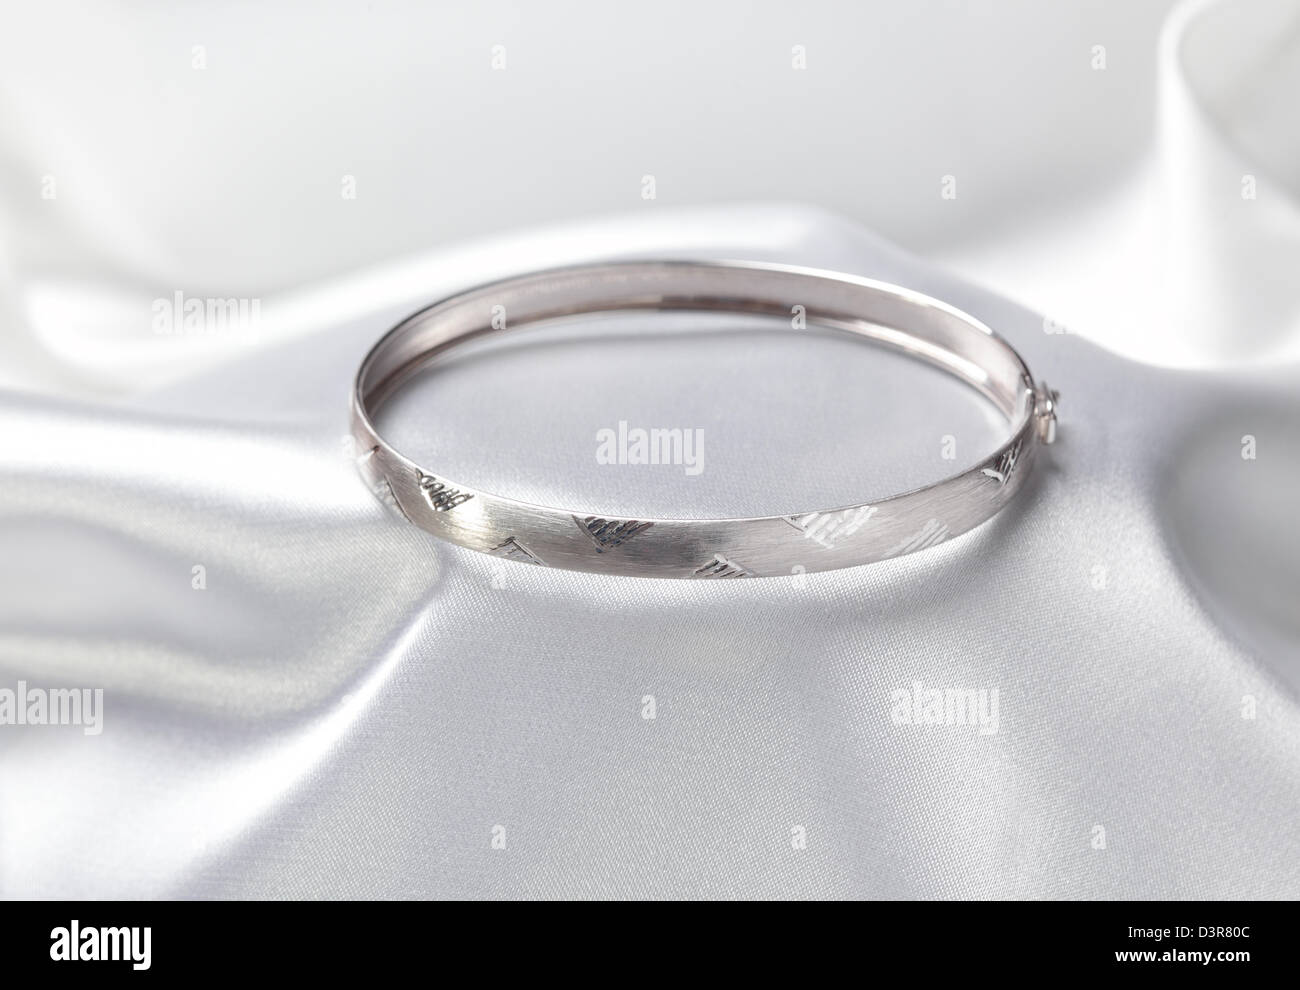 Close up photo of platinum or silver bracelet on white textile - Stock Image